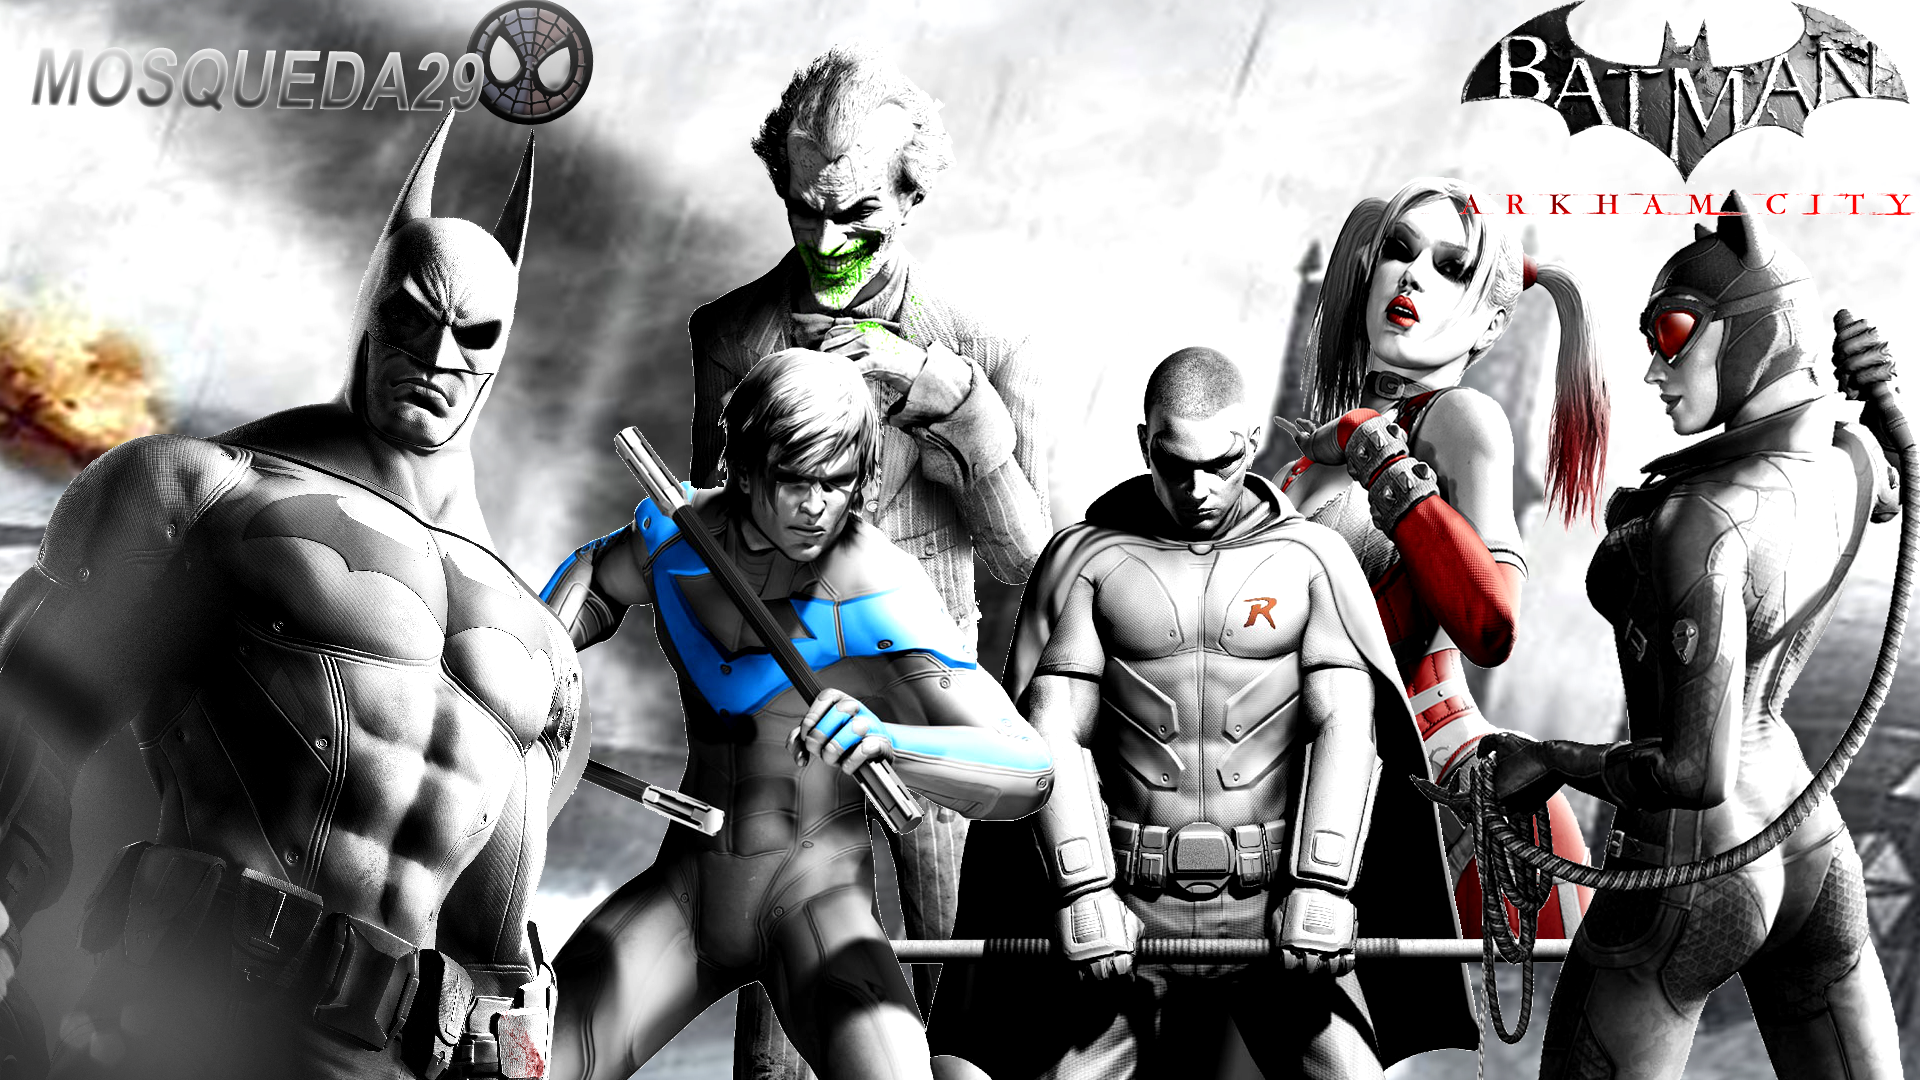 Name Batman Arkham City Wallpaper By Mosqueda29 D64ifjmpng 1920x1080